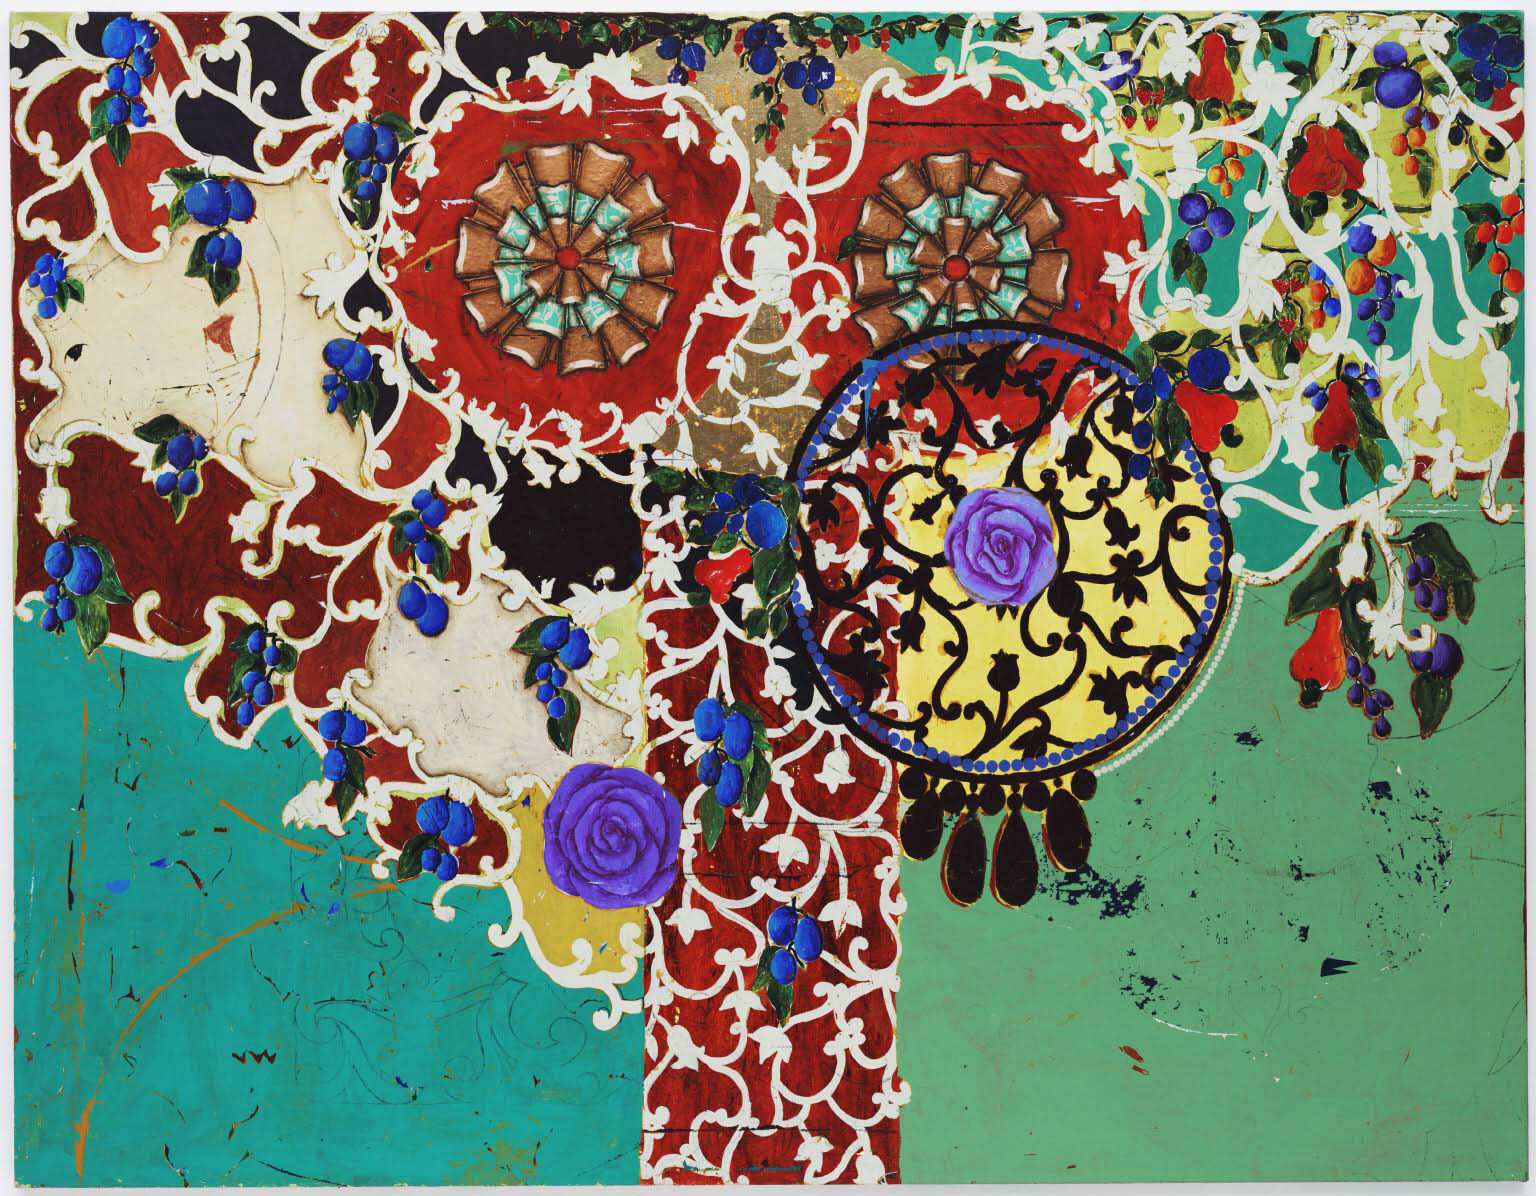 Beatriz Milhazes. Succulent Eggplants. 1996. Synthetic polymer paint on canvas, 74 3/4 × 96 1/2″ (189.9 × 245.1 cm). Gift of Agnes Gund and Nina and Gordon Bunshaft Bequest Fund. © 2007 Beatriz Milhazes